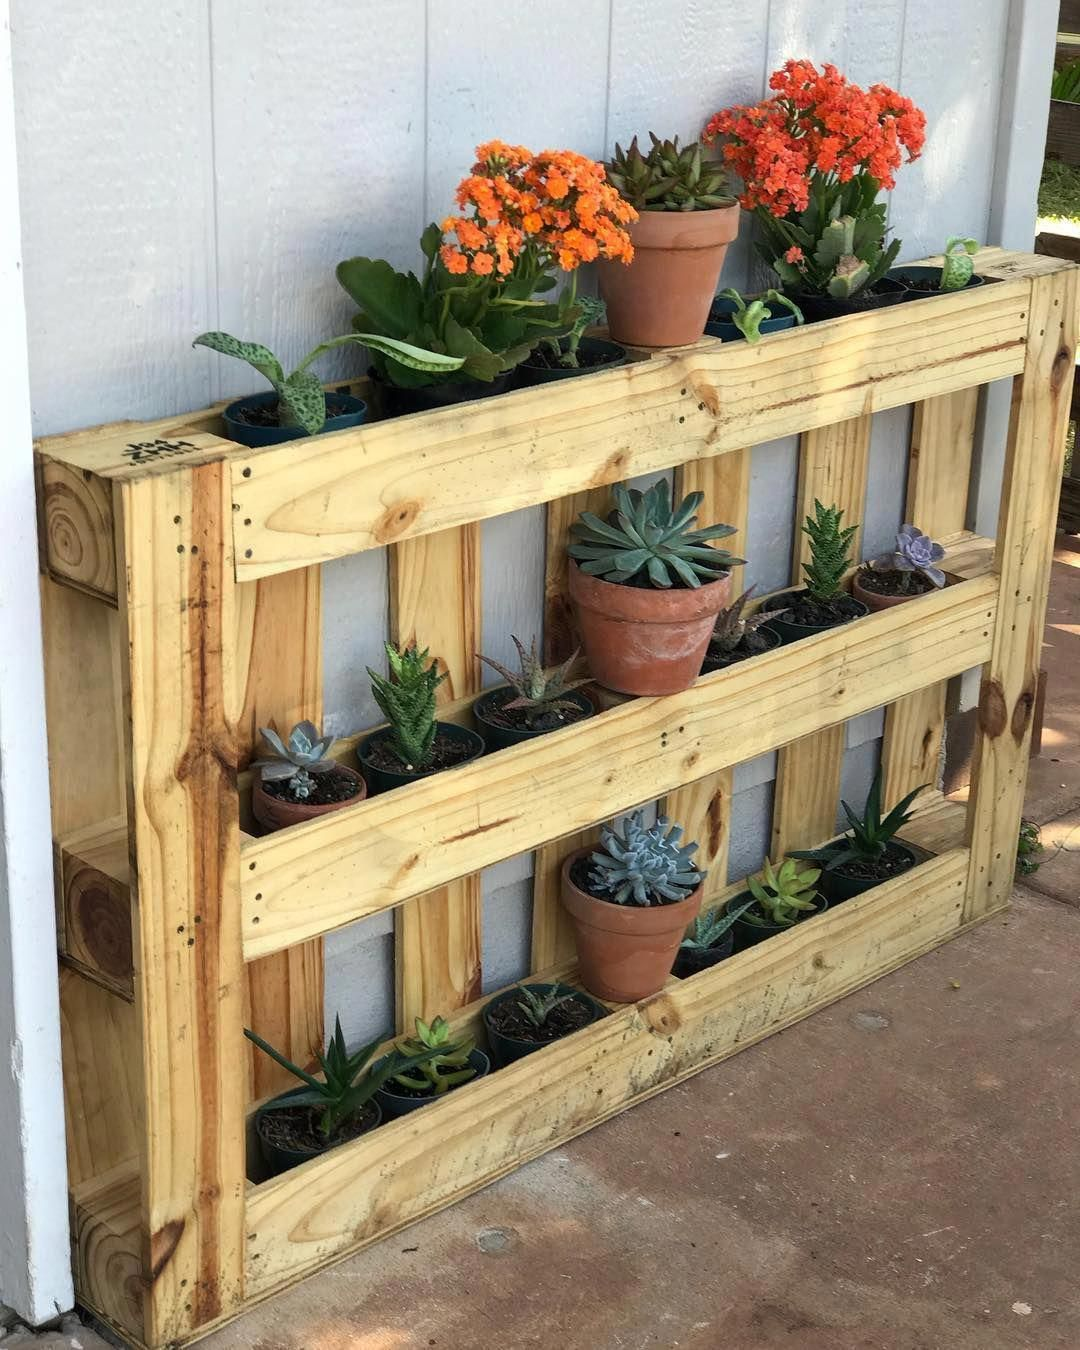 Diy Wooden Pallet Plant Stand Serves Your Indoor And Outdoor Needs Pallet Projects Garden Wooden Plant Stands Wood Pallet Planters